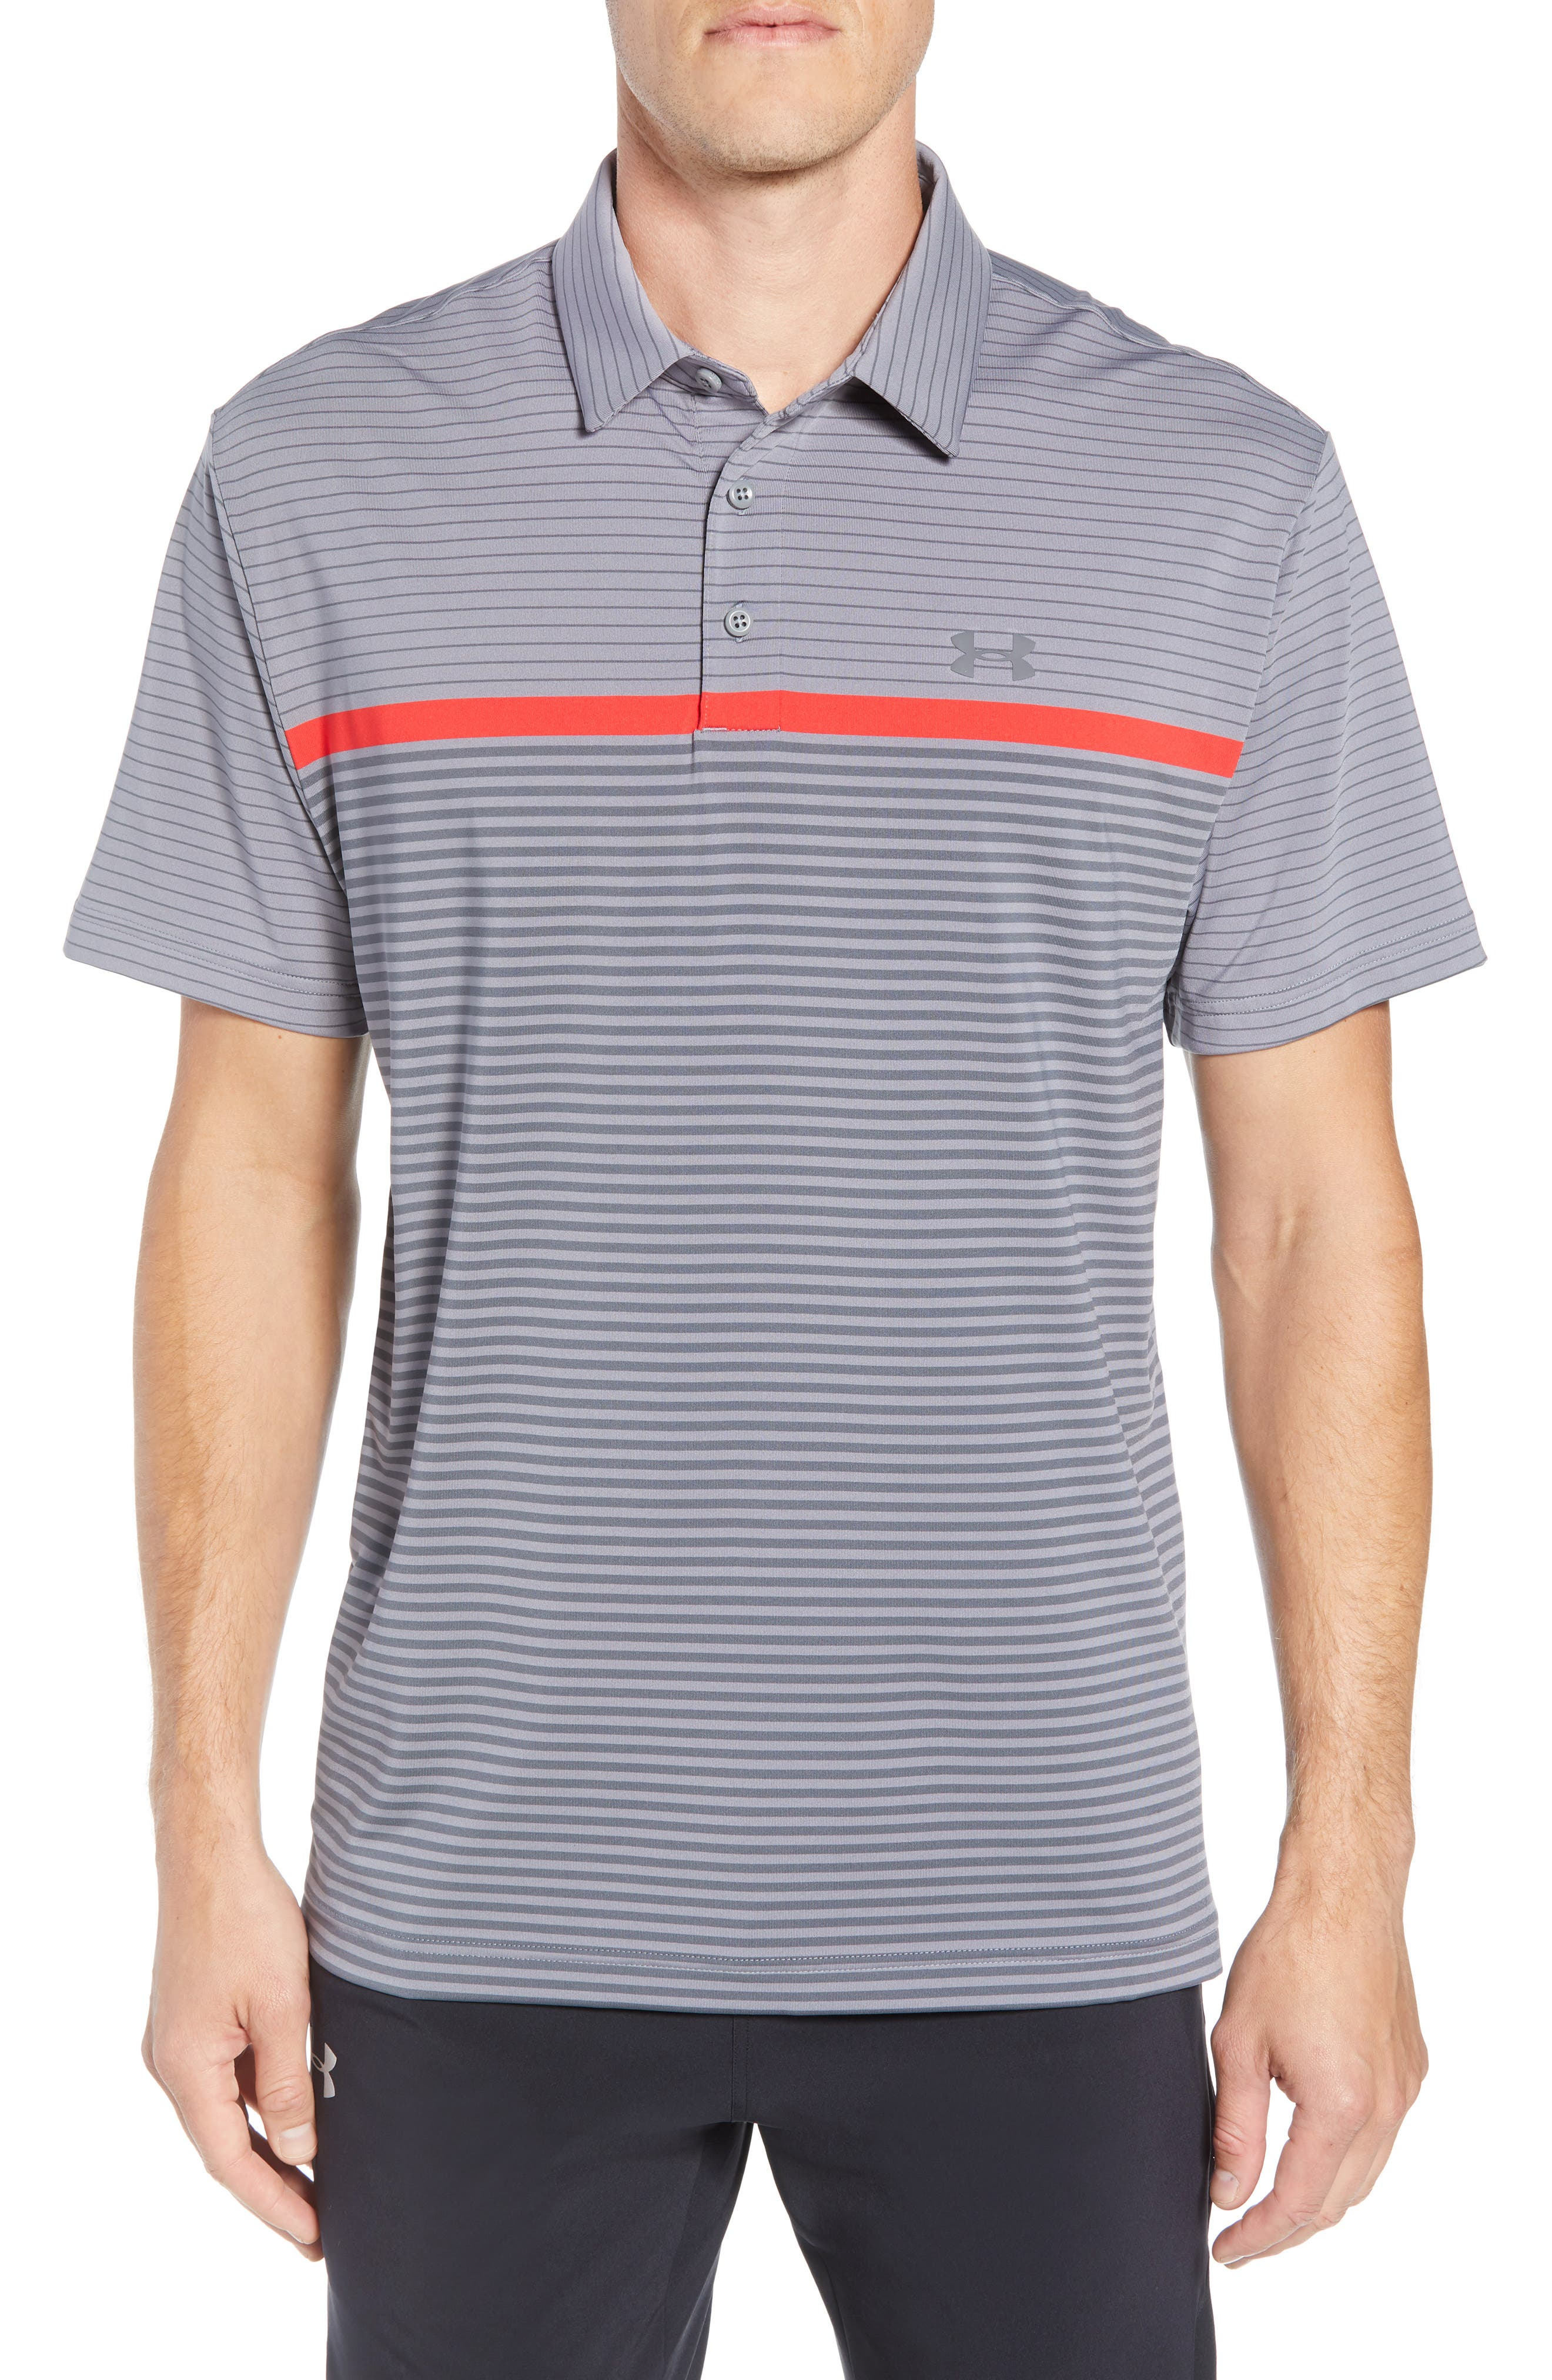 'Playoff' Loose Fit Short Sleeve Polo,                             Main thumbnail 1, color,                             020